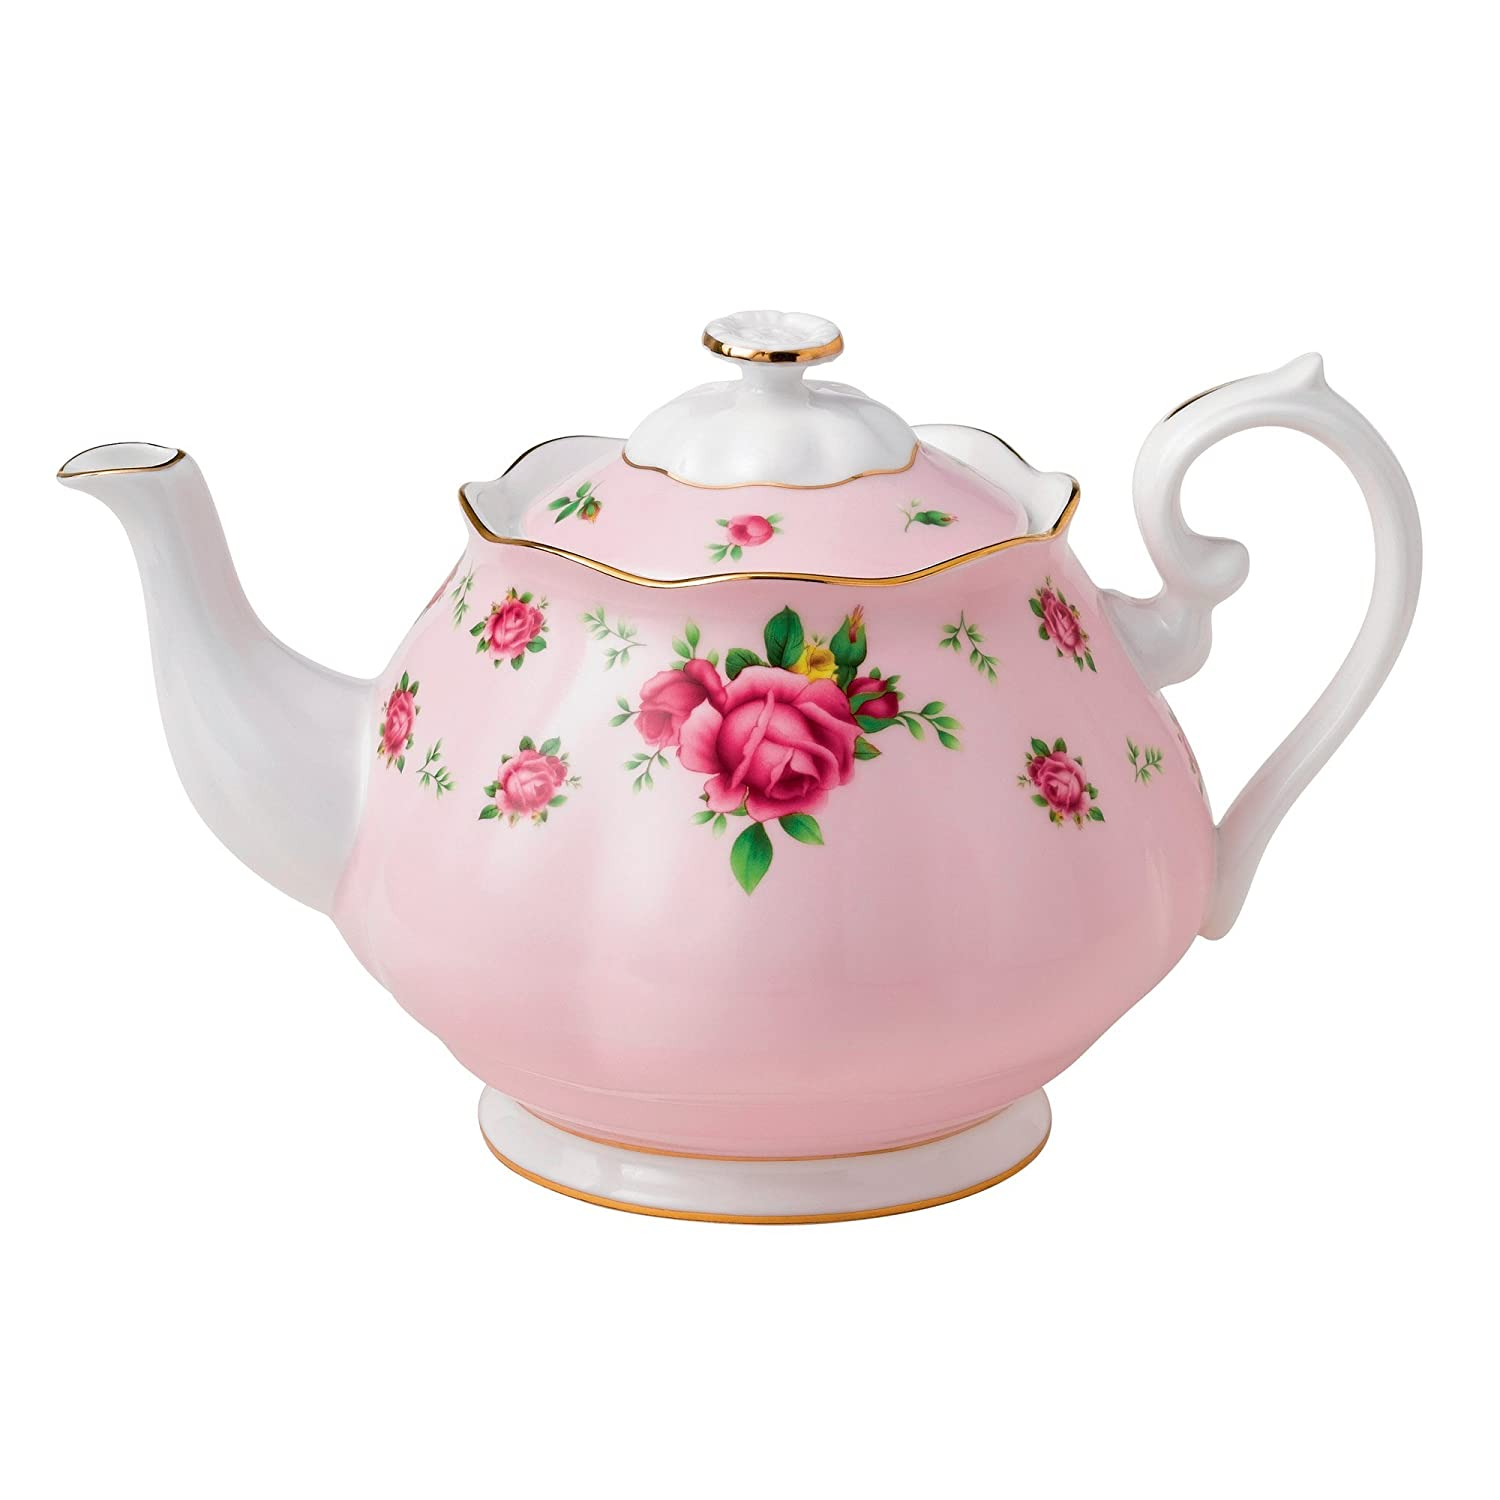 New Country Roses Pink by Royal Albert 1.25ltr Teekanne NCRPNK25817